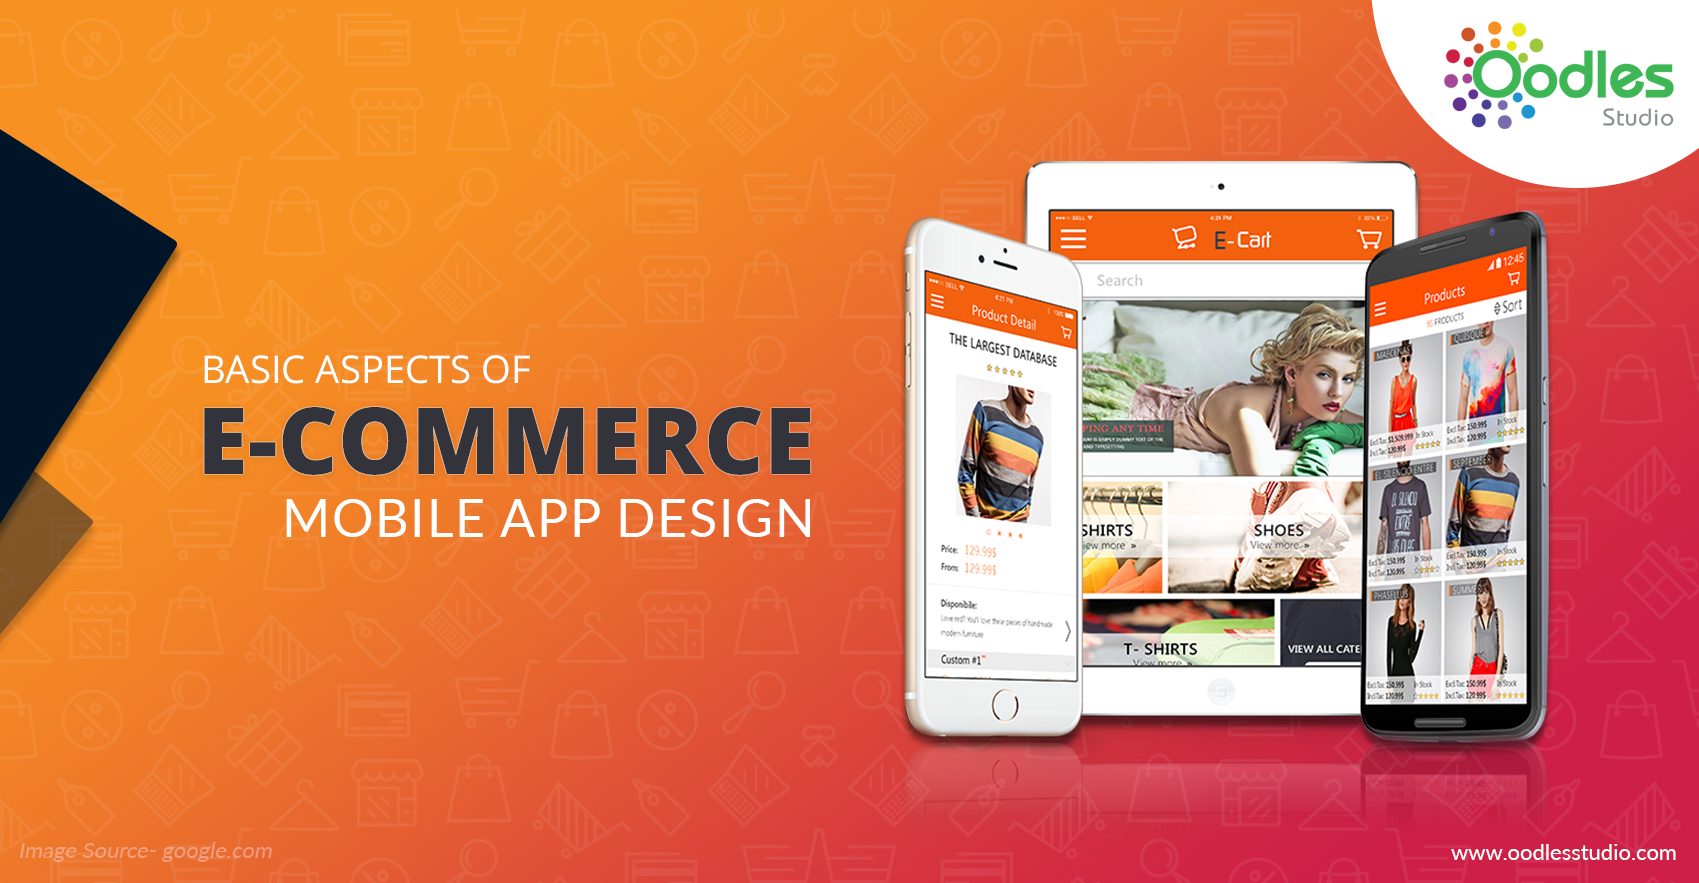 Basic aspects of e commerce mobile app design oodles studio for E commerce mobili